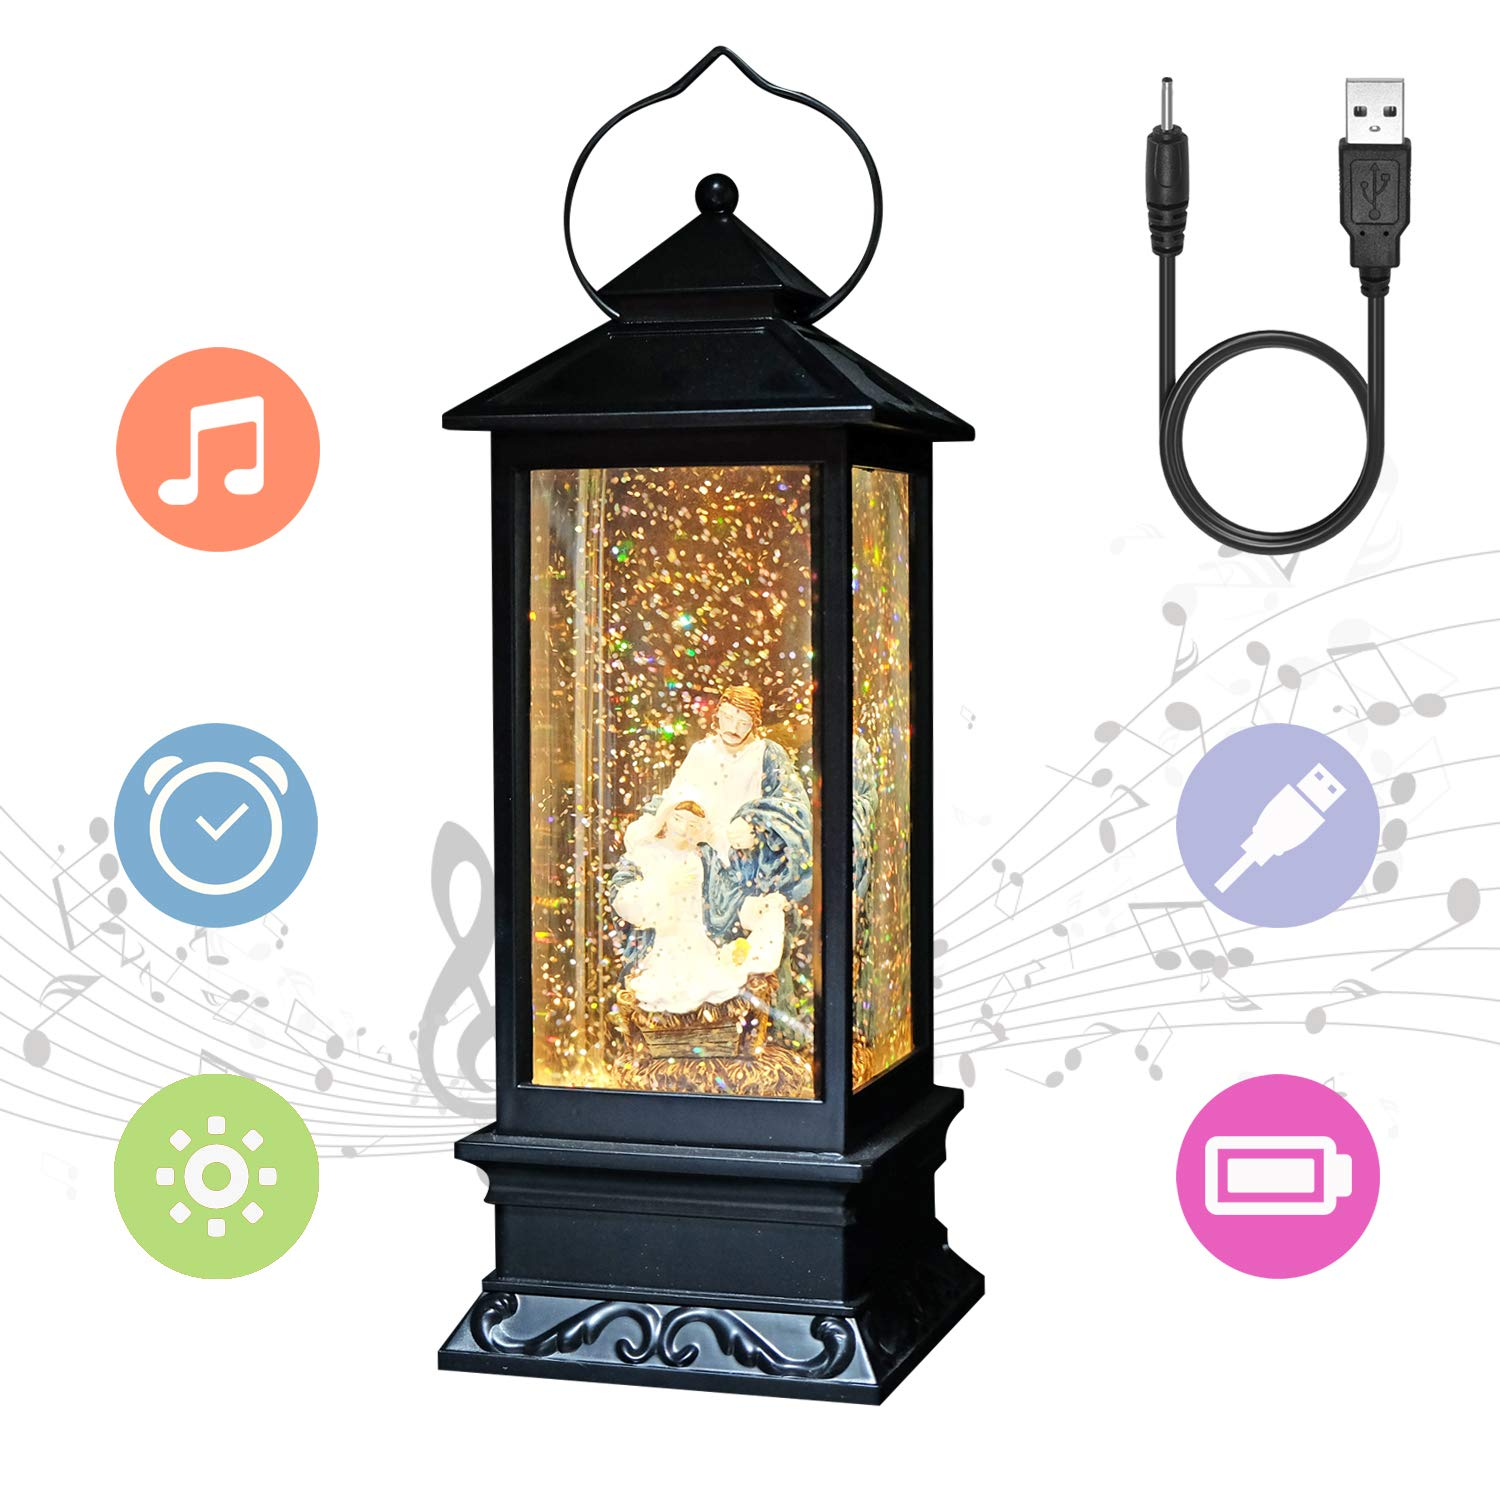 Eldnacele Christmas Navitity Scene Lantern Snow Globe Decoration Plays Music, USB to DC Cable Timer Included, Holiday Decorative Table Centerpiece 12 Inches (Jehovah)